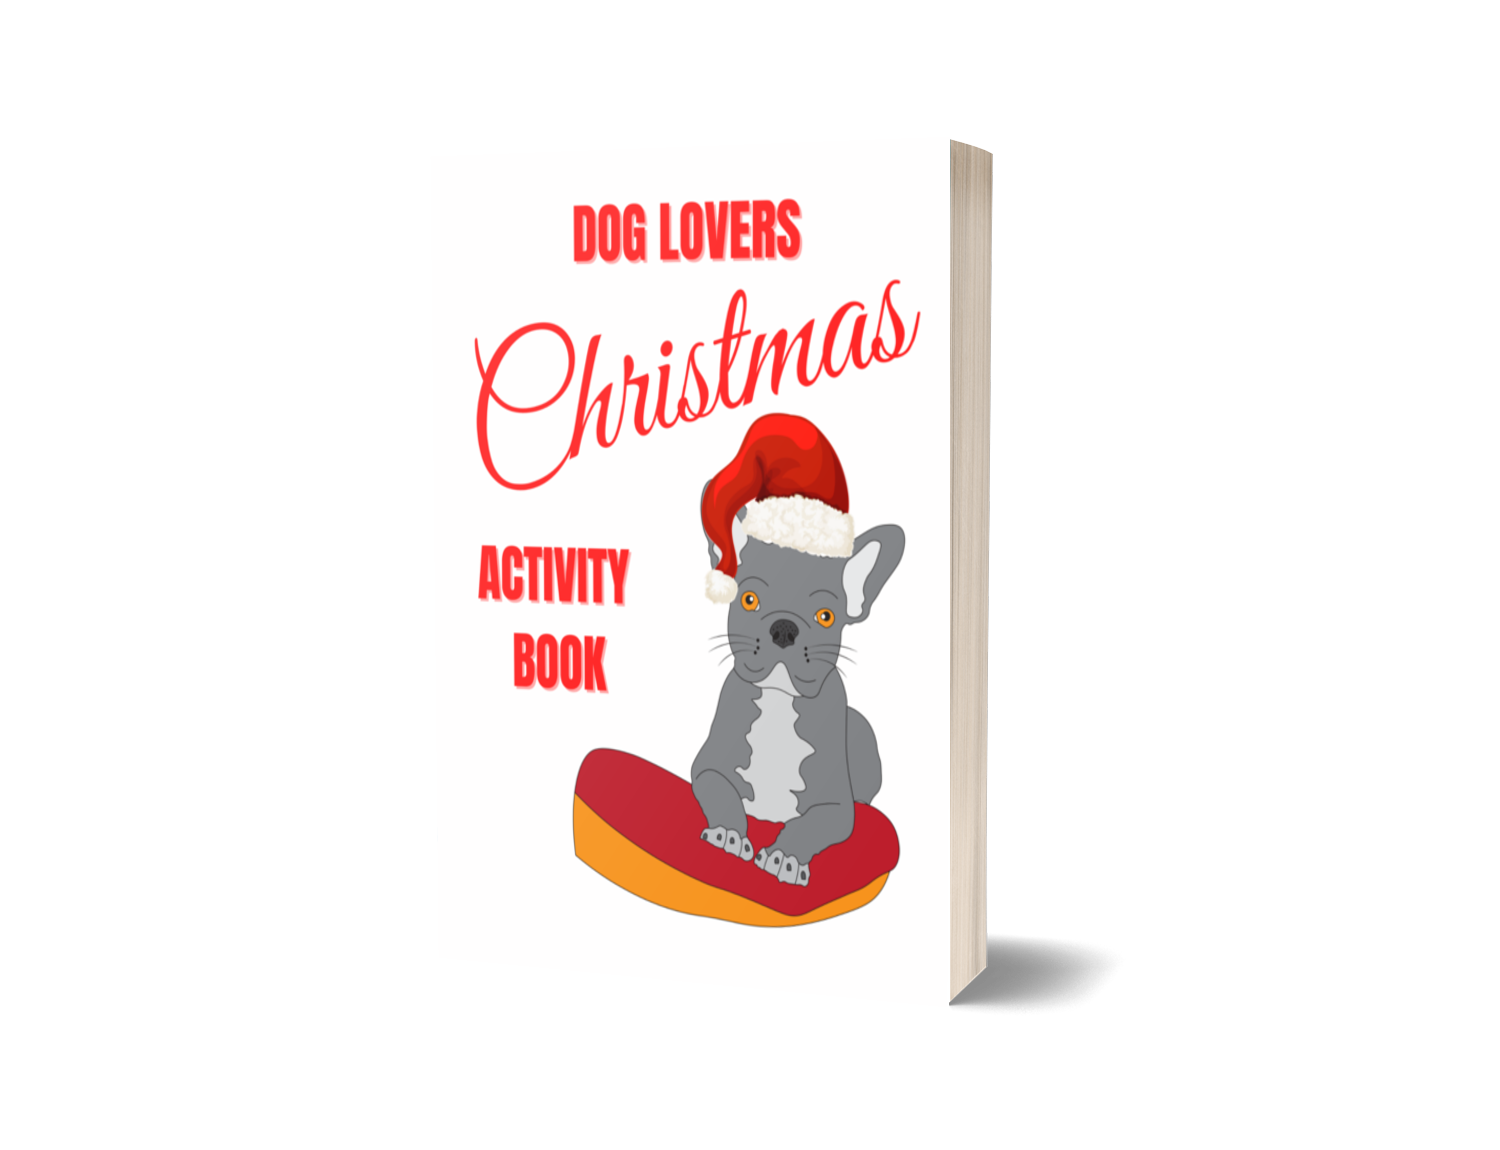 Dog Lovers Christmas Activity Book